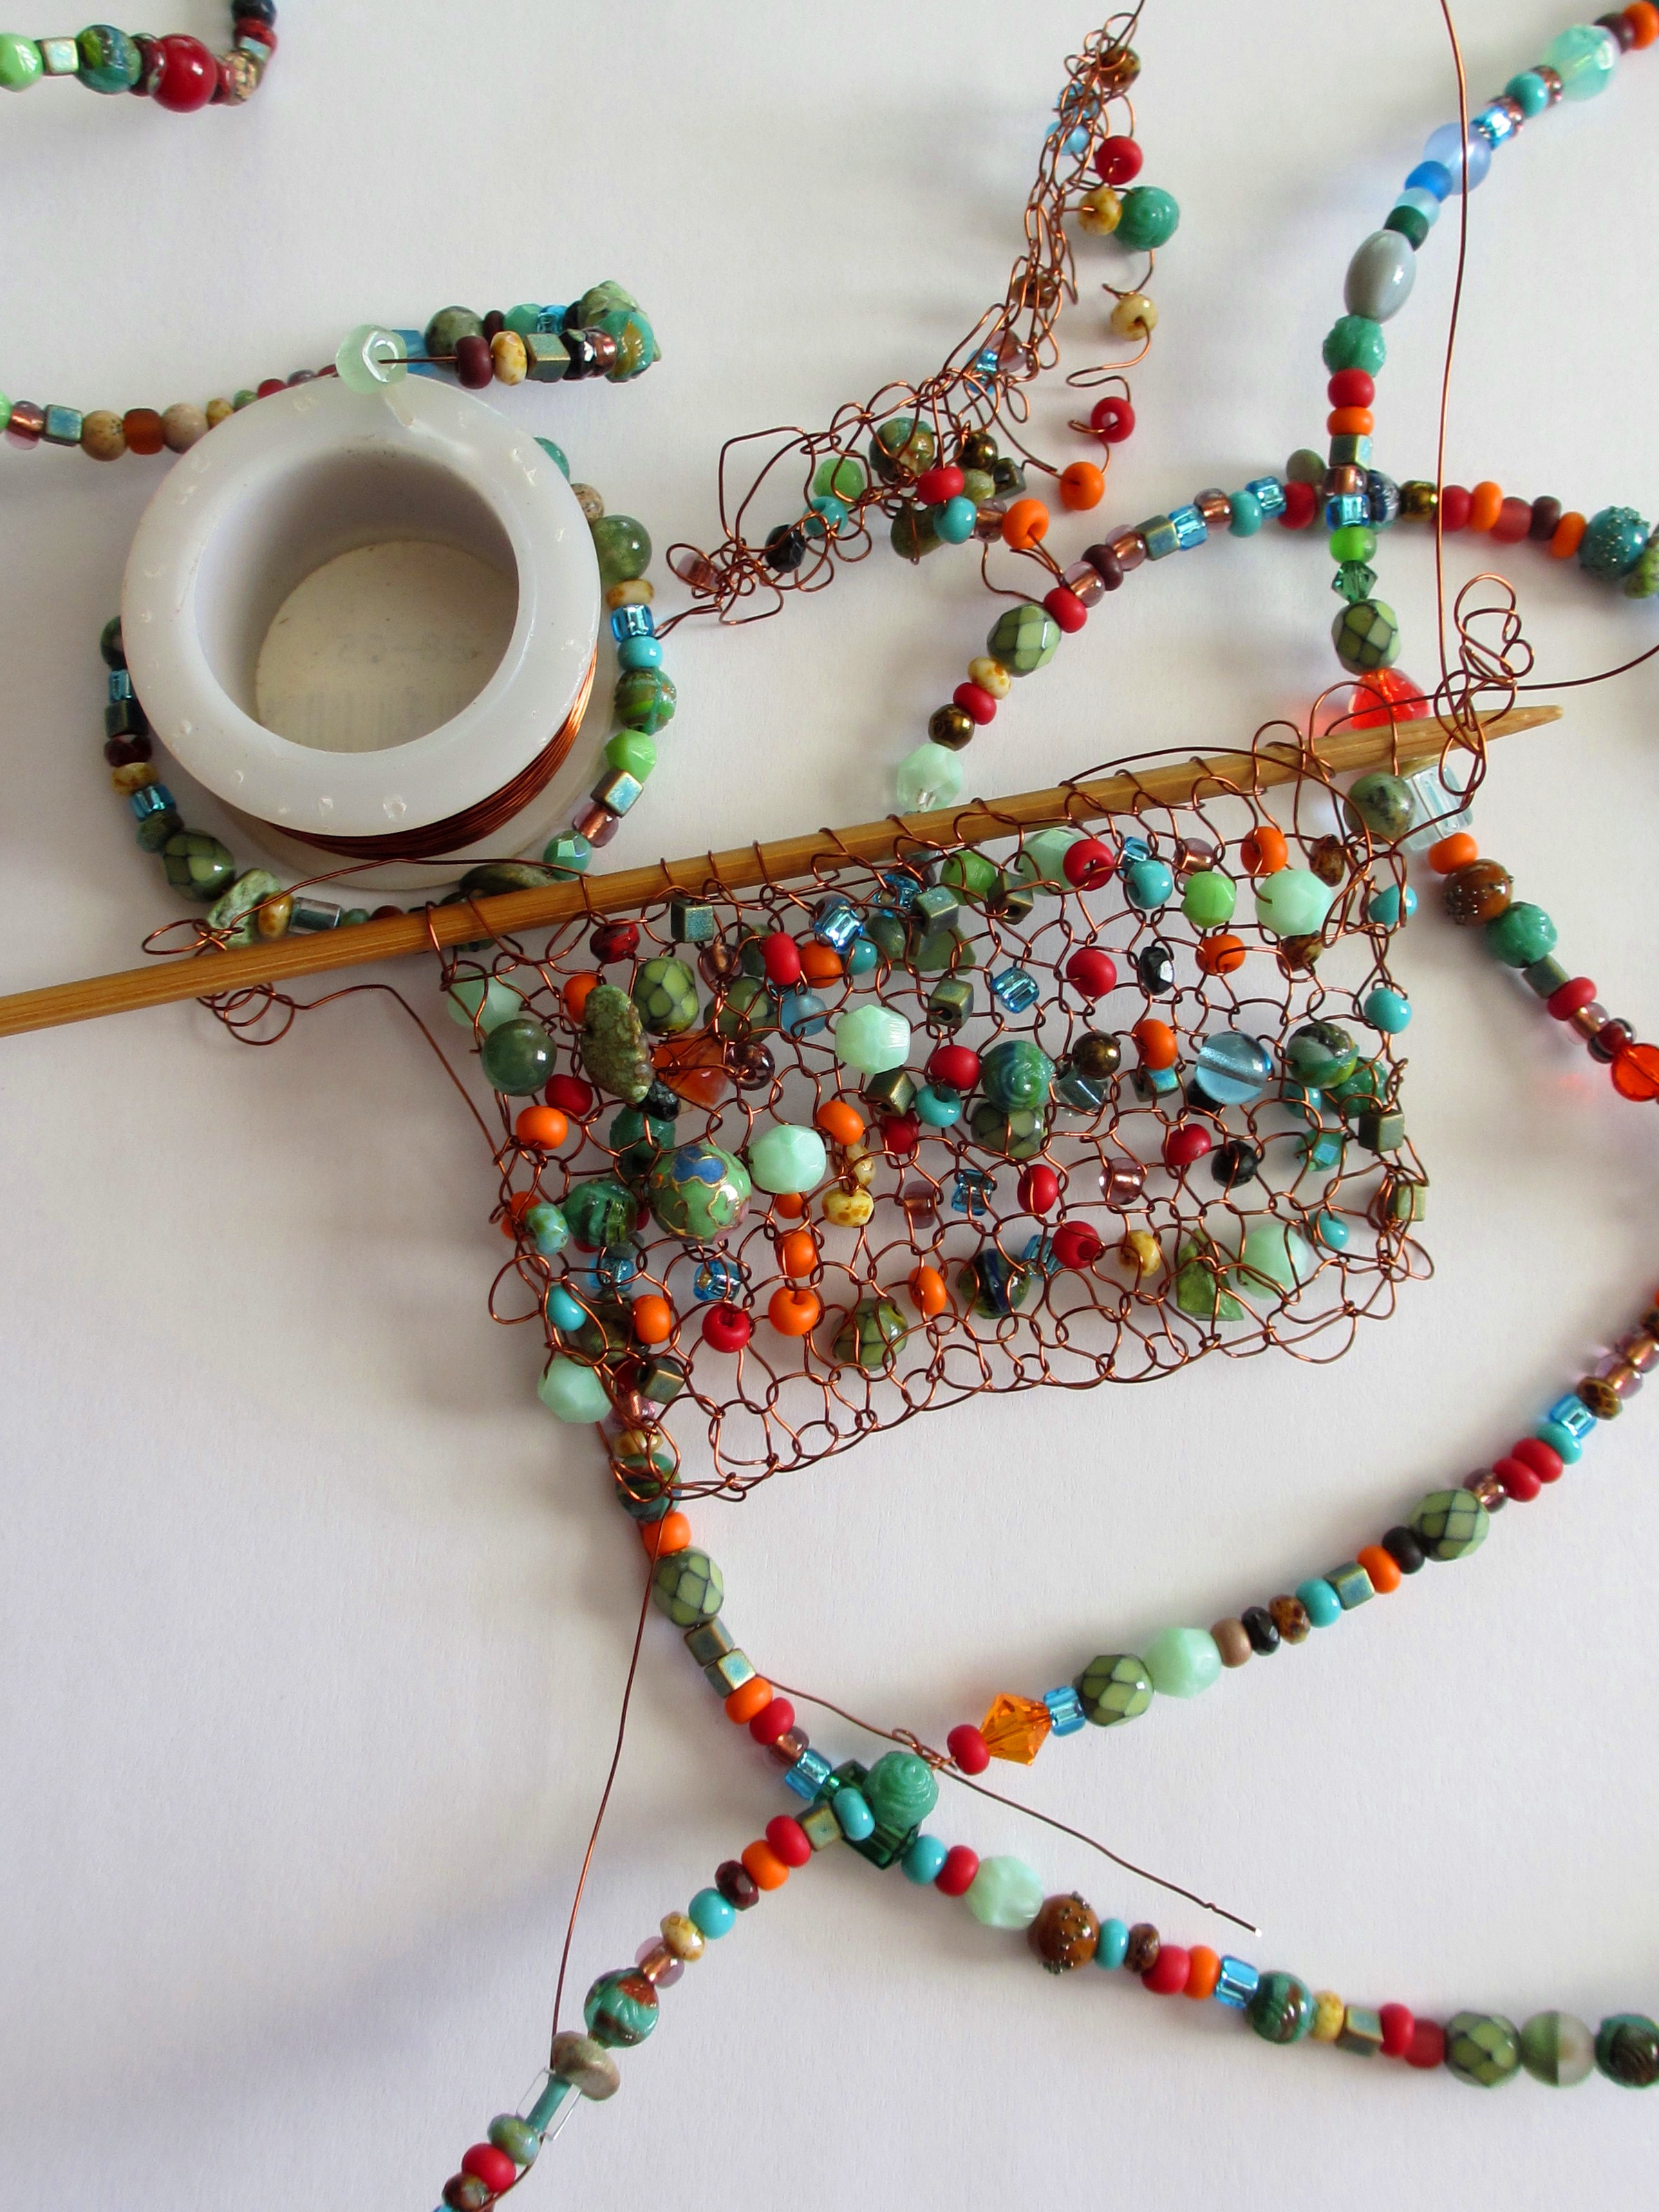 Knitting With Wire And Beads : Wire and beads sticks a gogo